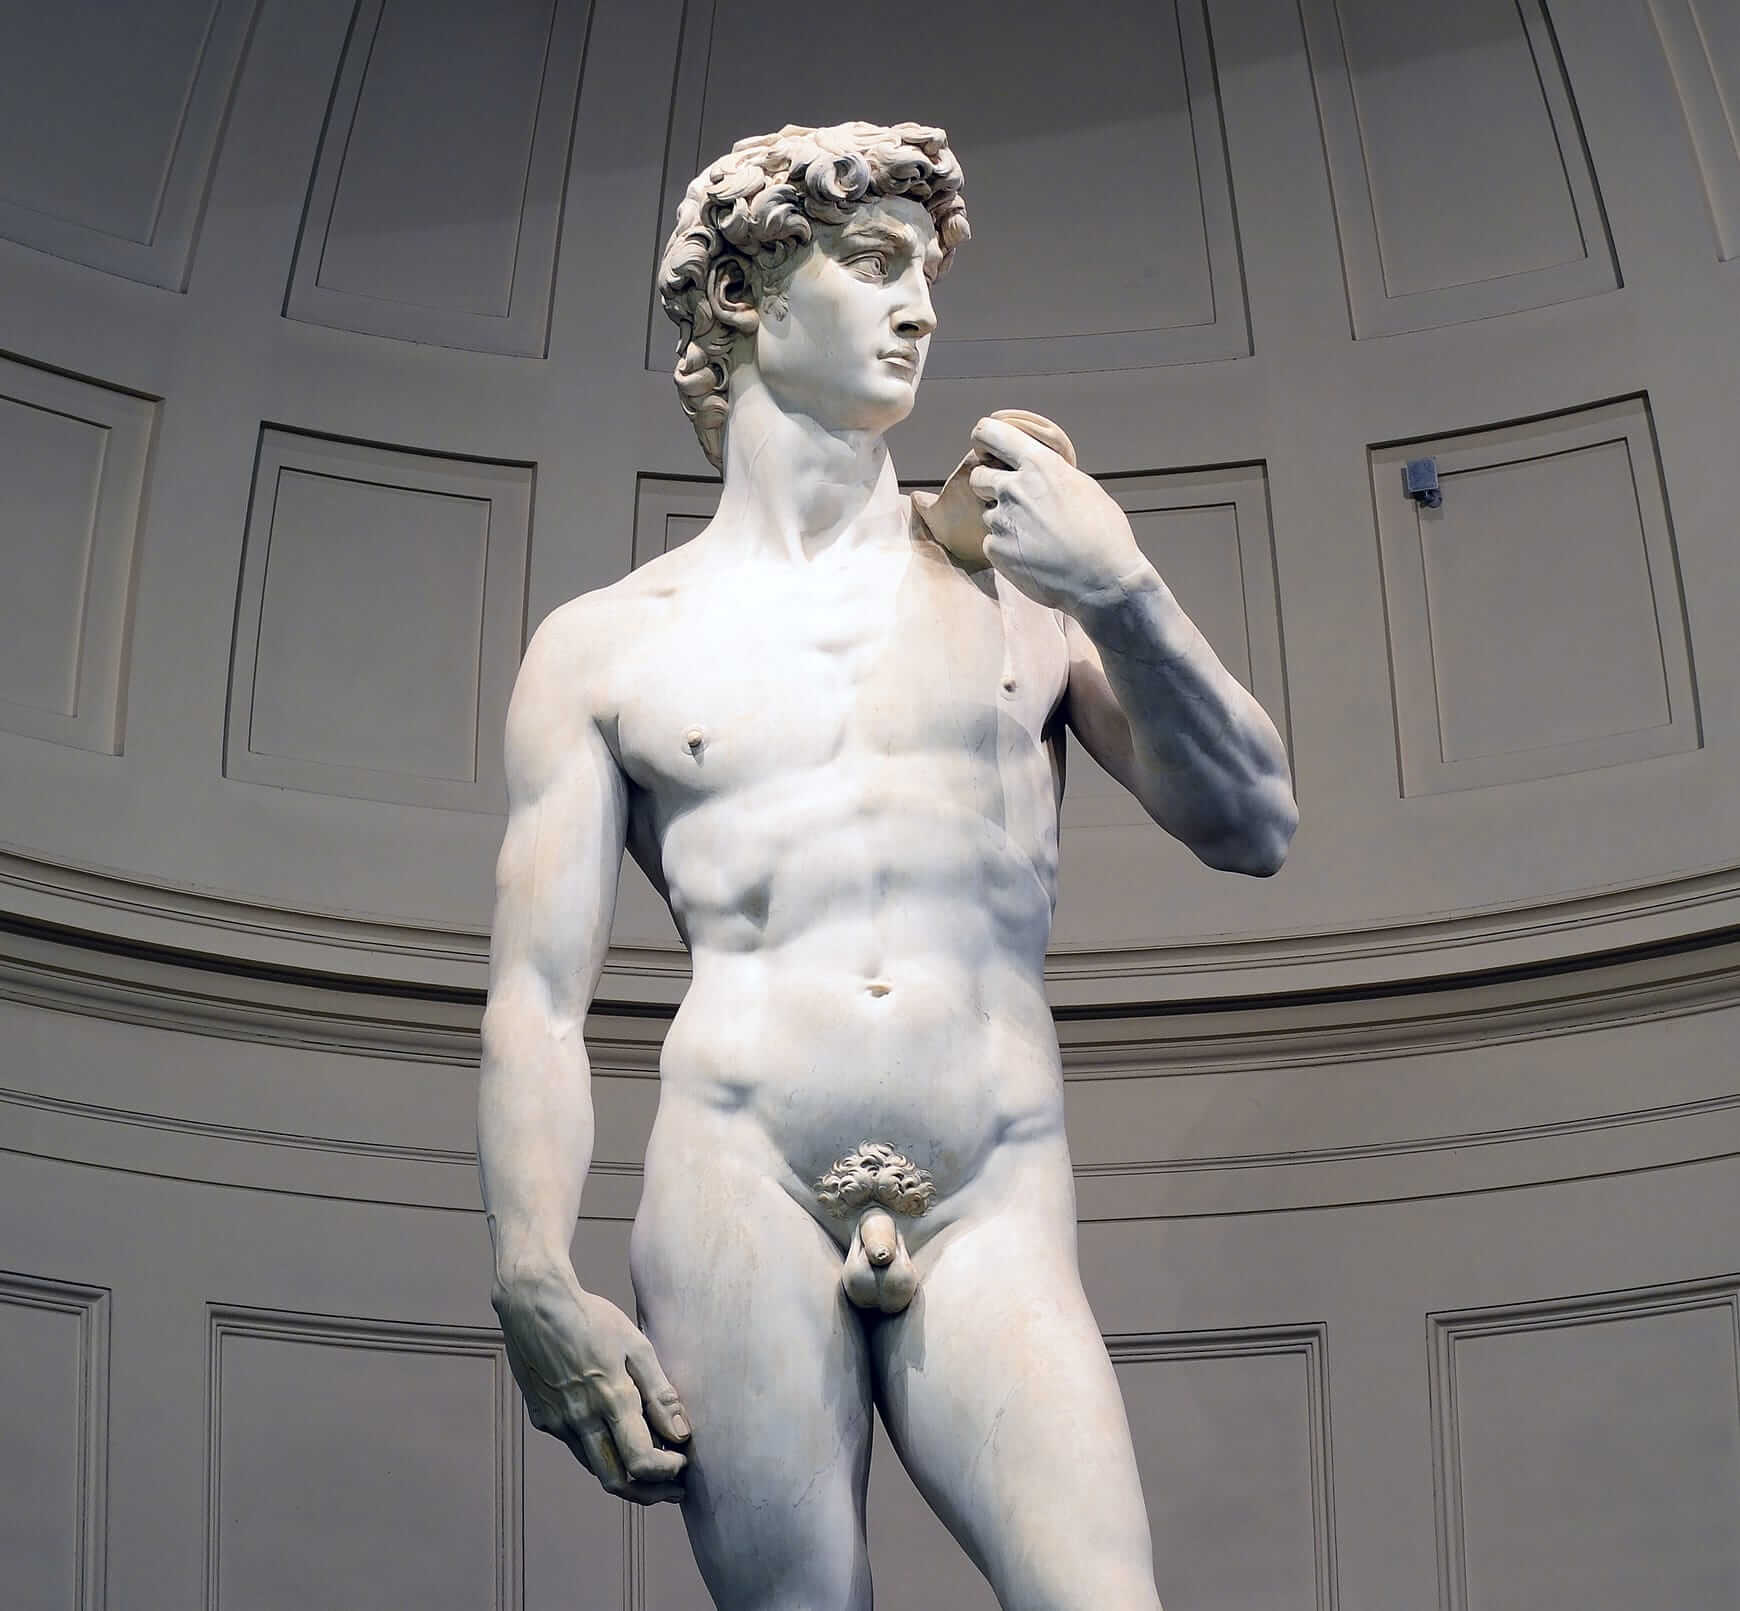 guide-english-visual-toolkit-size-michelangelo-david